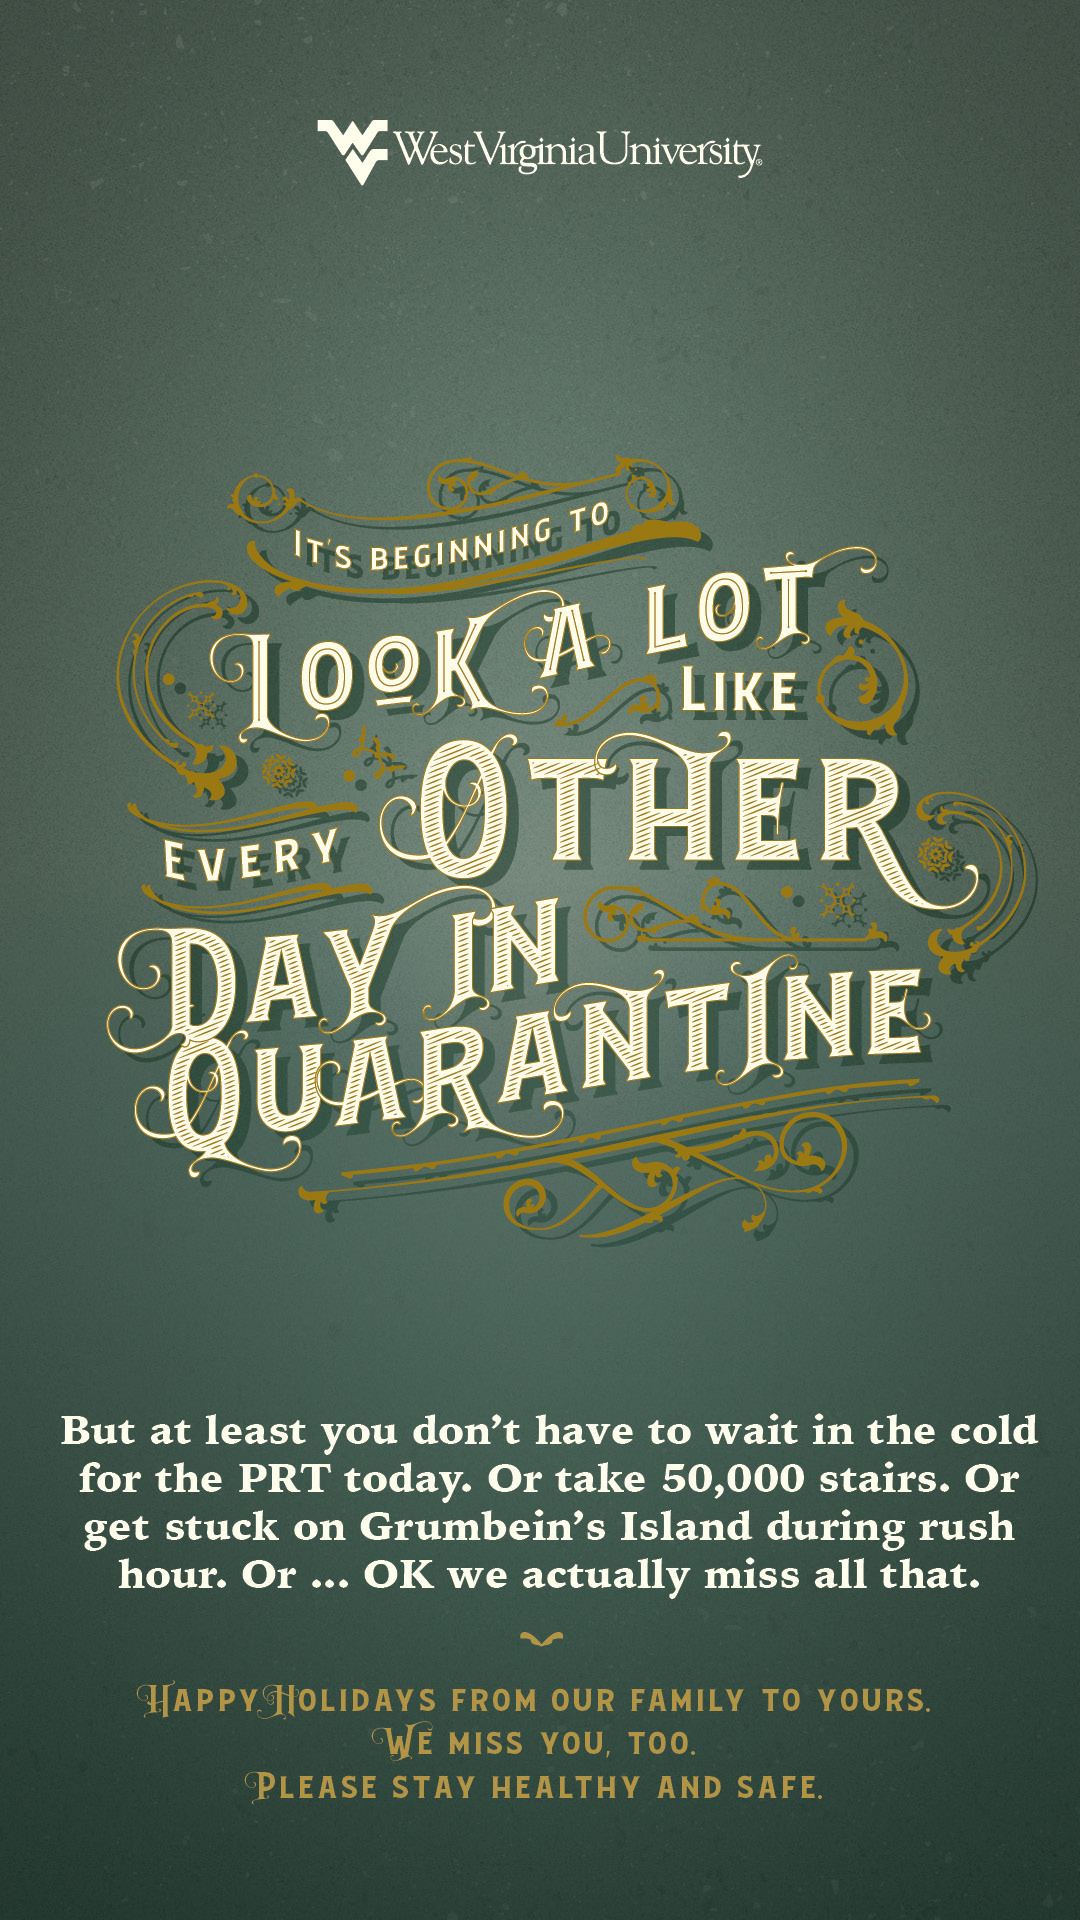 It's Beginning to Look a Lot Like Every Other Day in Quarantine poster. Poster content below image.